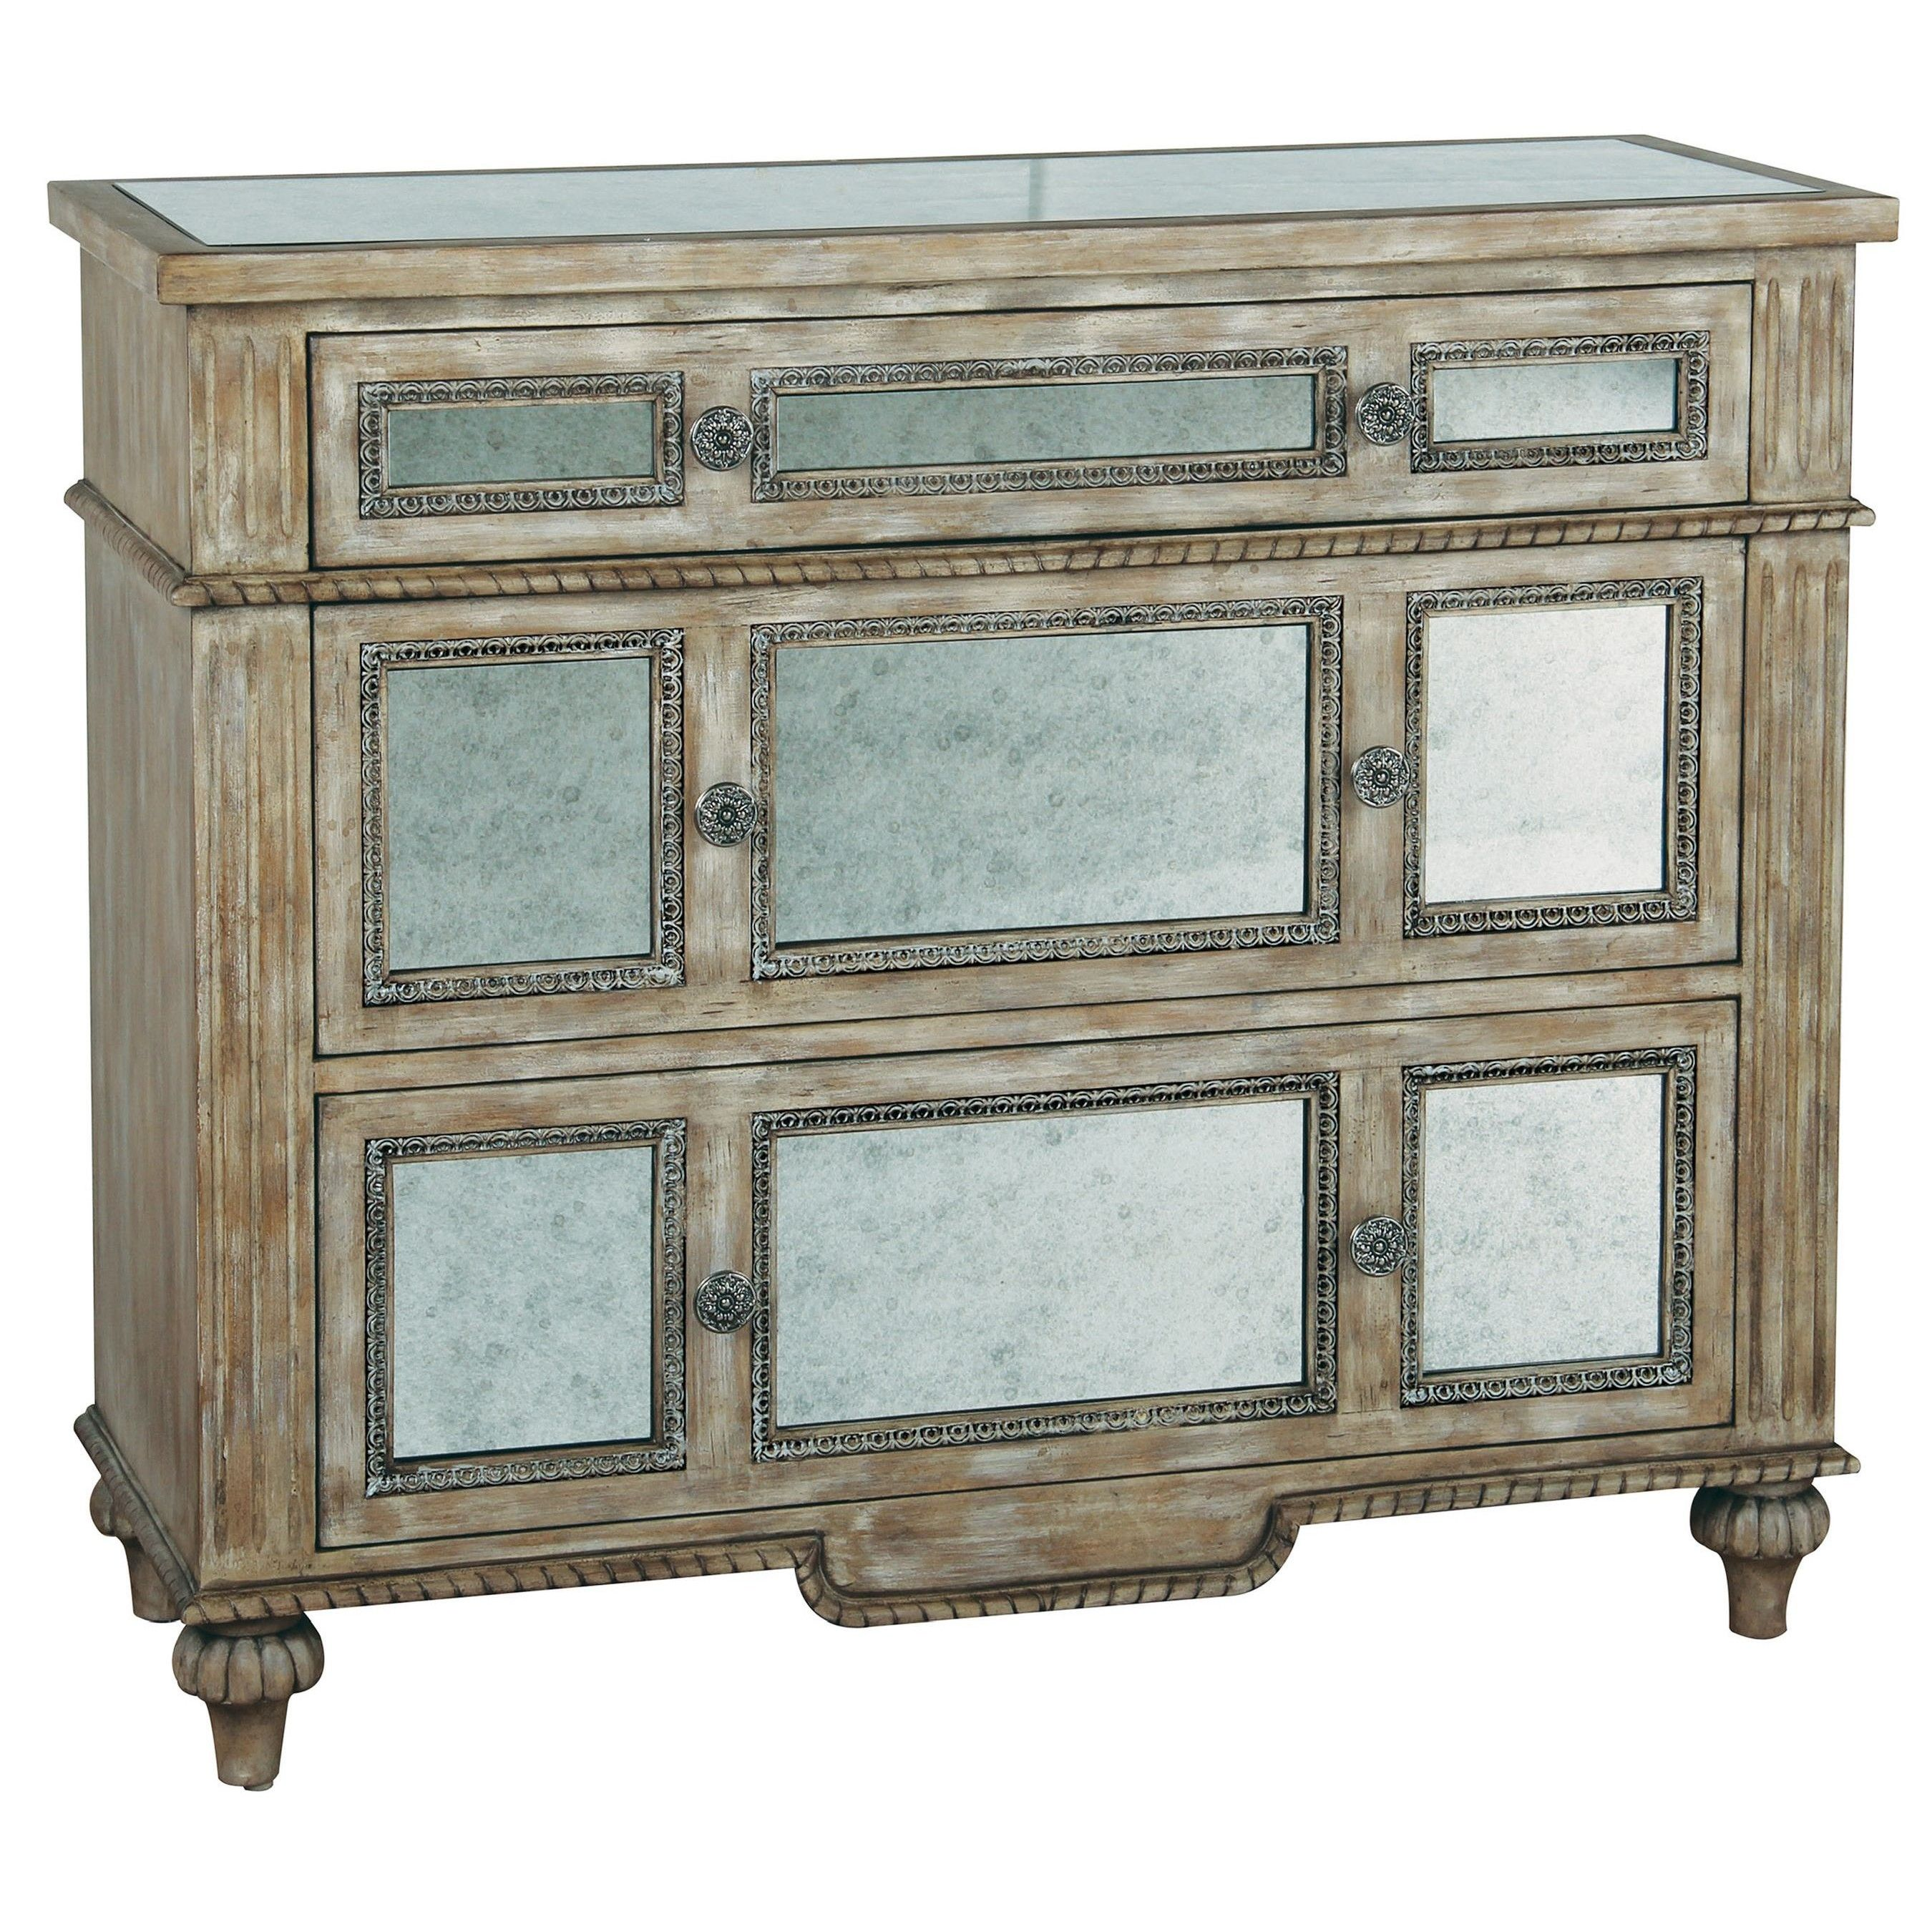 FIG Stores is offering Liberty & Pulaski Furniture currently 8% OFF Regular Price! Pulaski Accents Chest More Sophisticated Than The Price Would Indicate, Our Chest Of Drawers Appears Naturally Aged And Relaxed. Antiqued Mirrors Are Inset Into The Drawer Fronts And Top To Amplify Sunlight And Candlelight. That's Romantic.